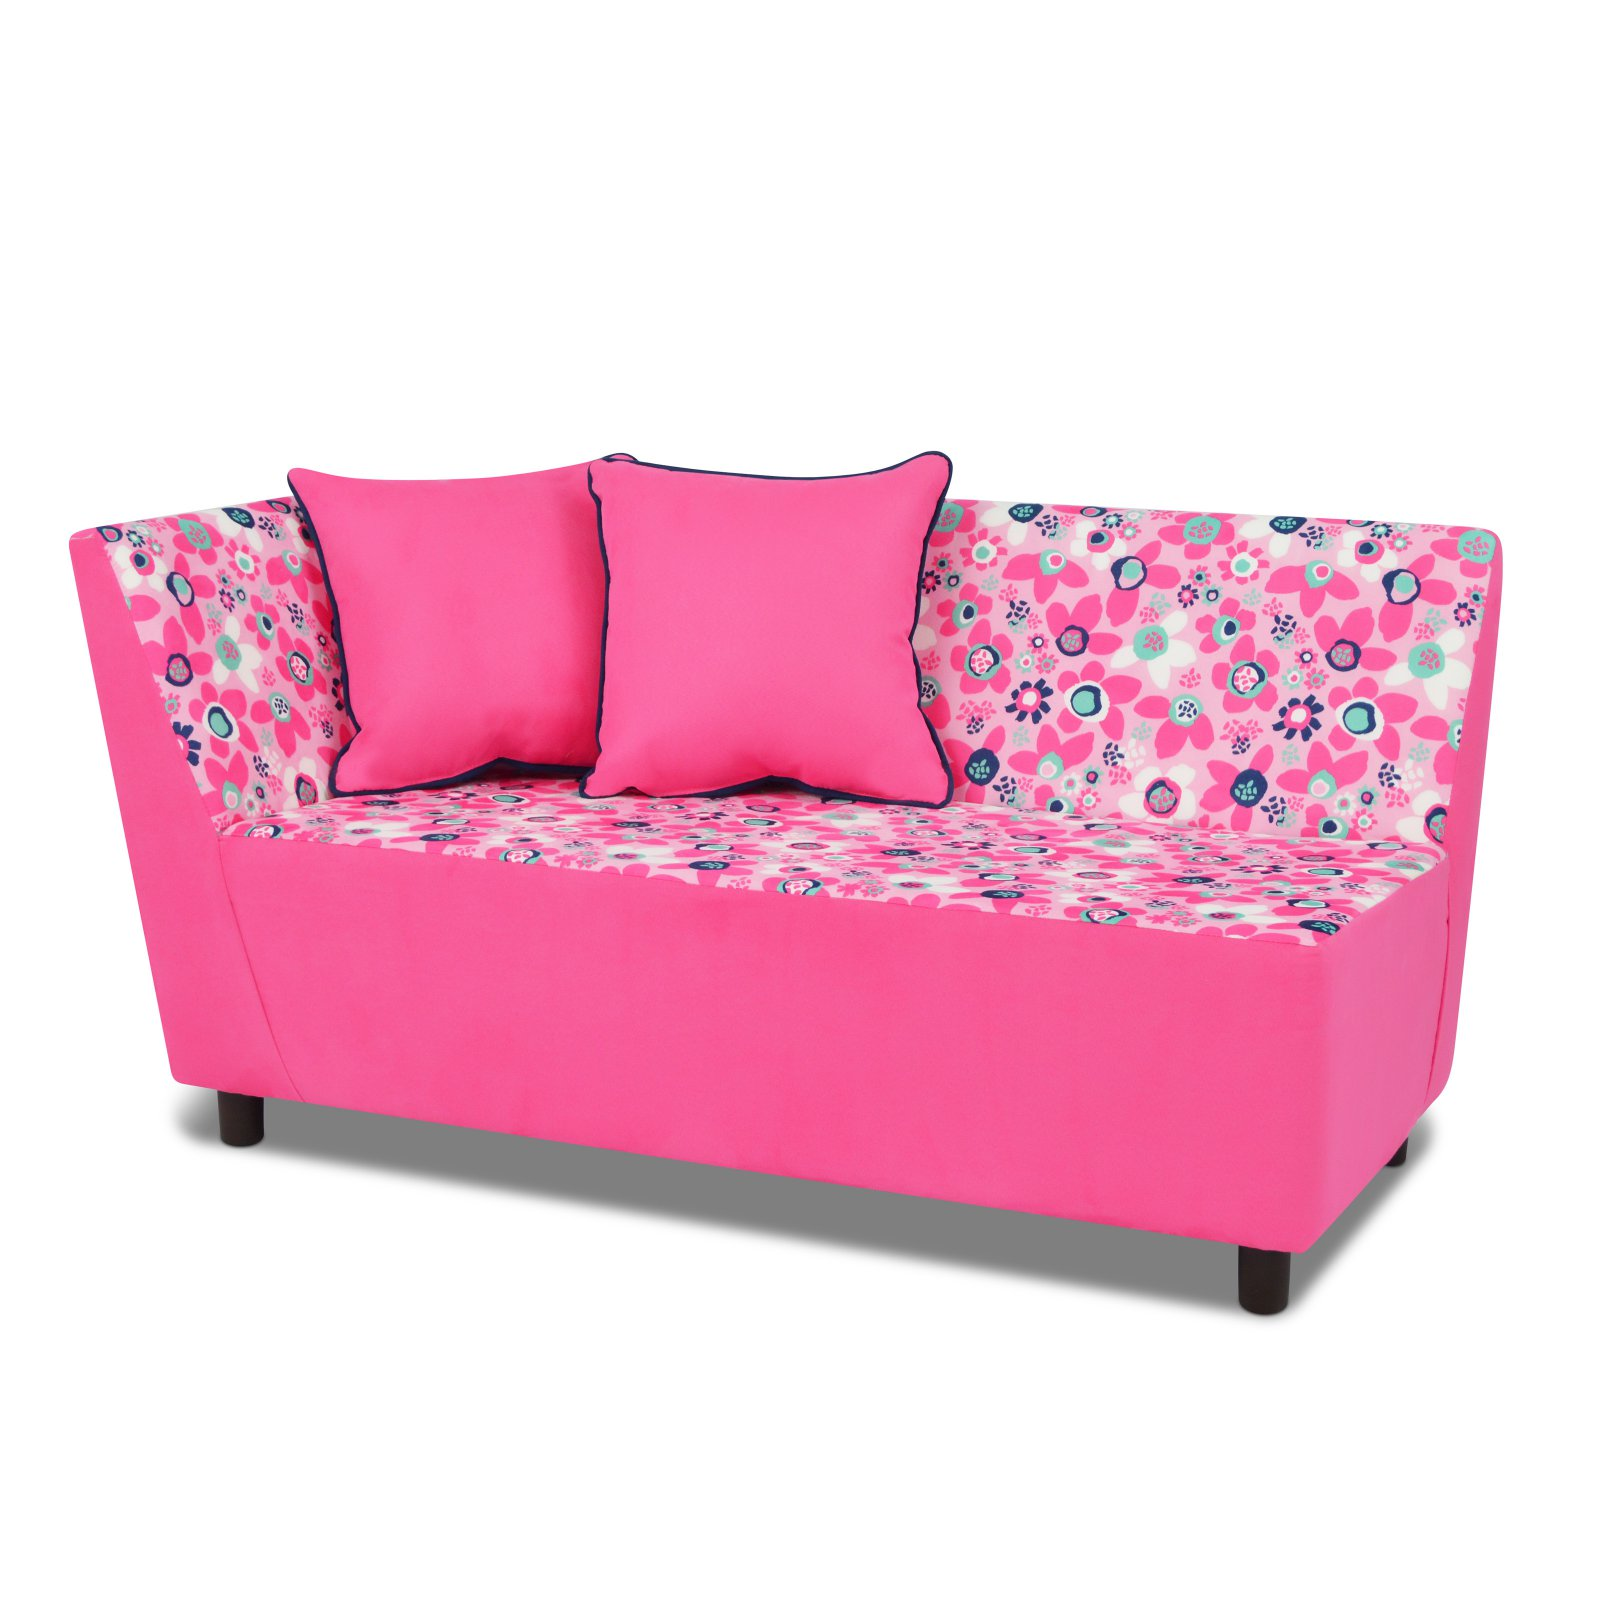 Tween Chaise w/two pillows - Wildflower with Passion Pink; Navy Welt Trim Accent